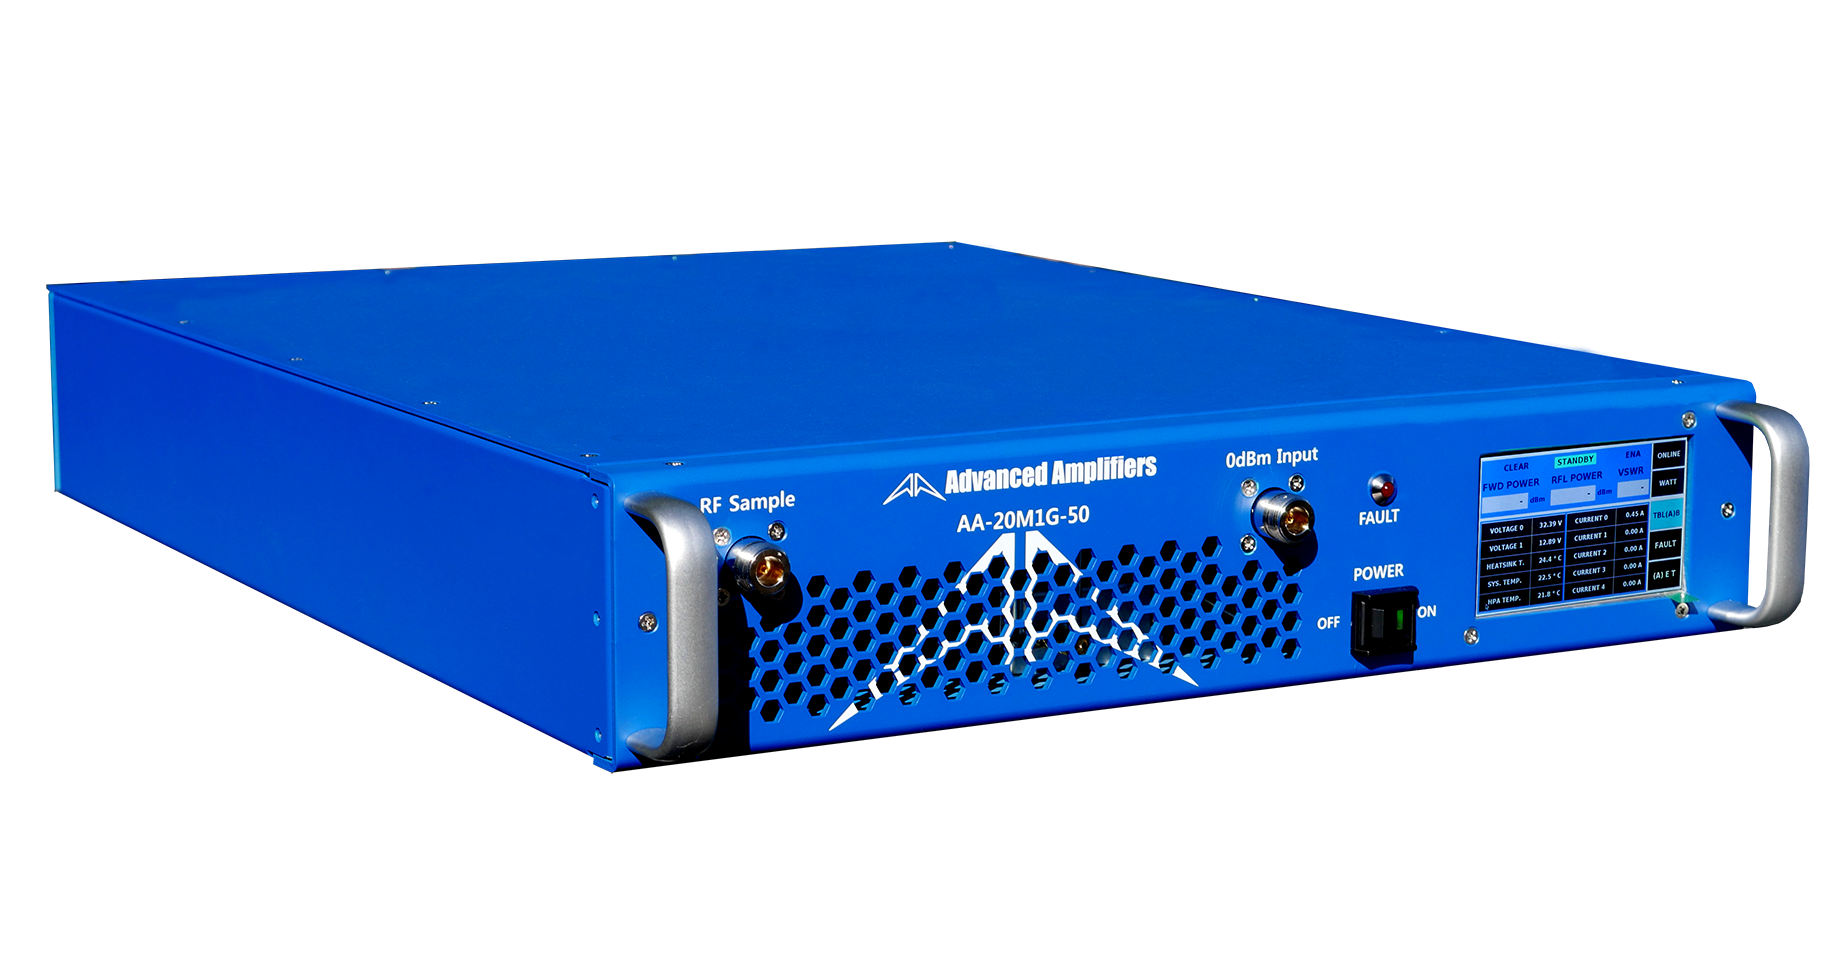 Advanced Amplifiers AA-20M1G-50 Solid State Amplifier | 20 - 1000MHz, 50W